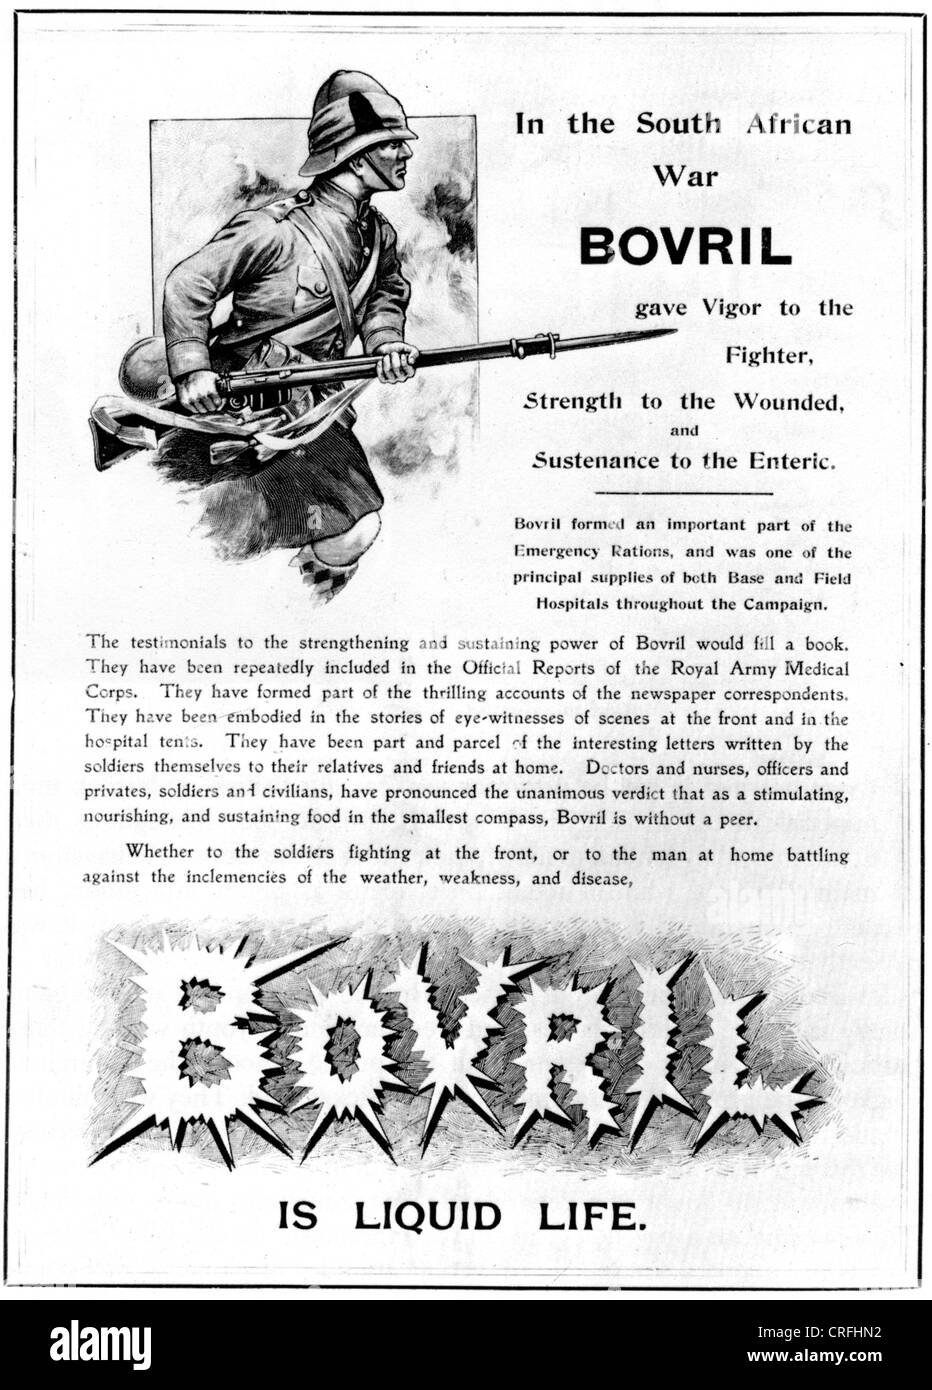 BOVRIL advert about 1899 referencing the Boer War - Stock Image